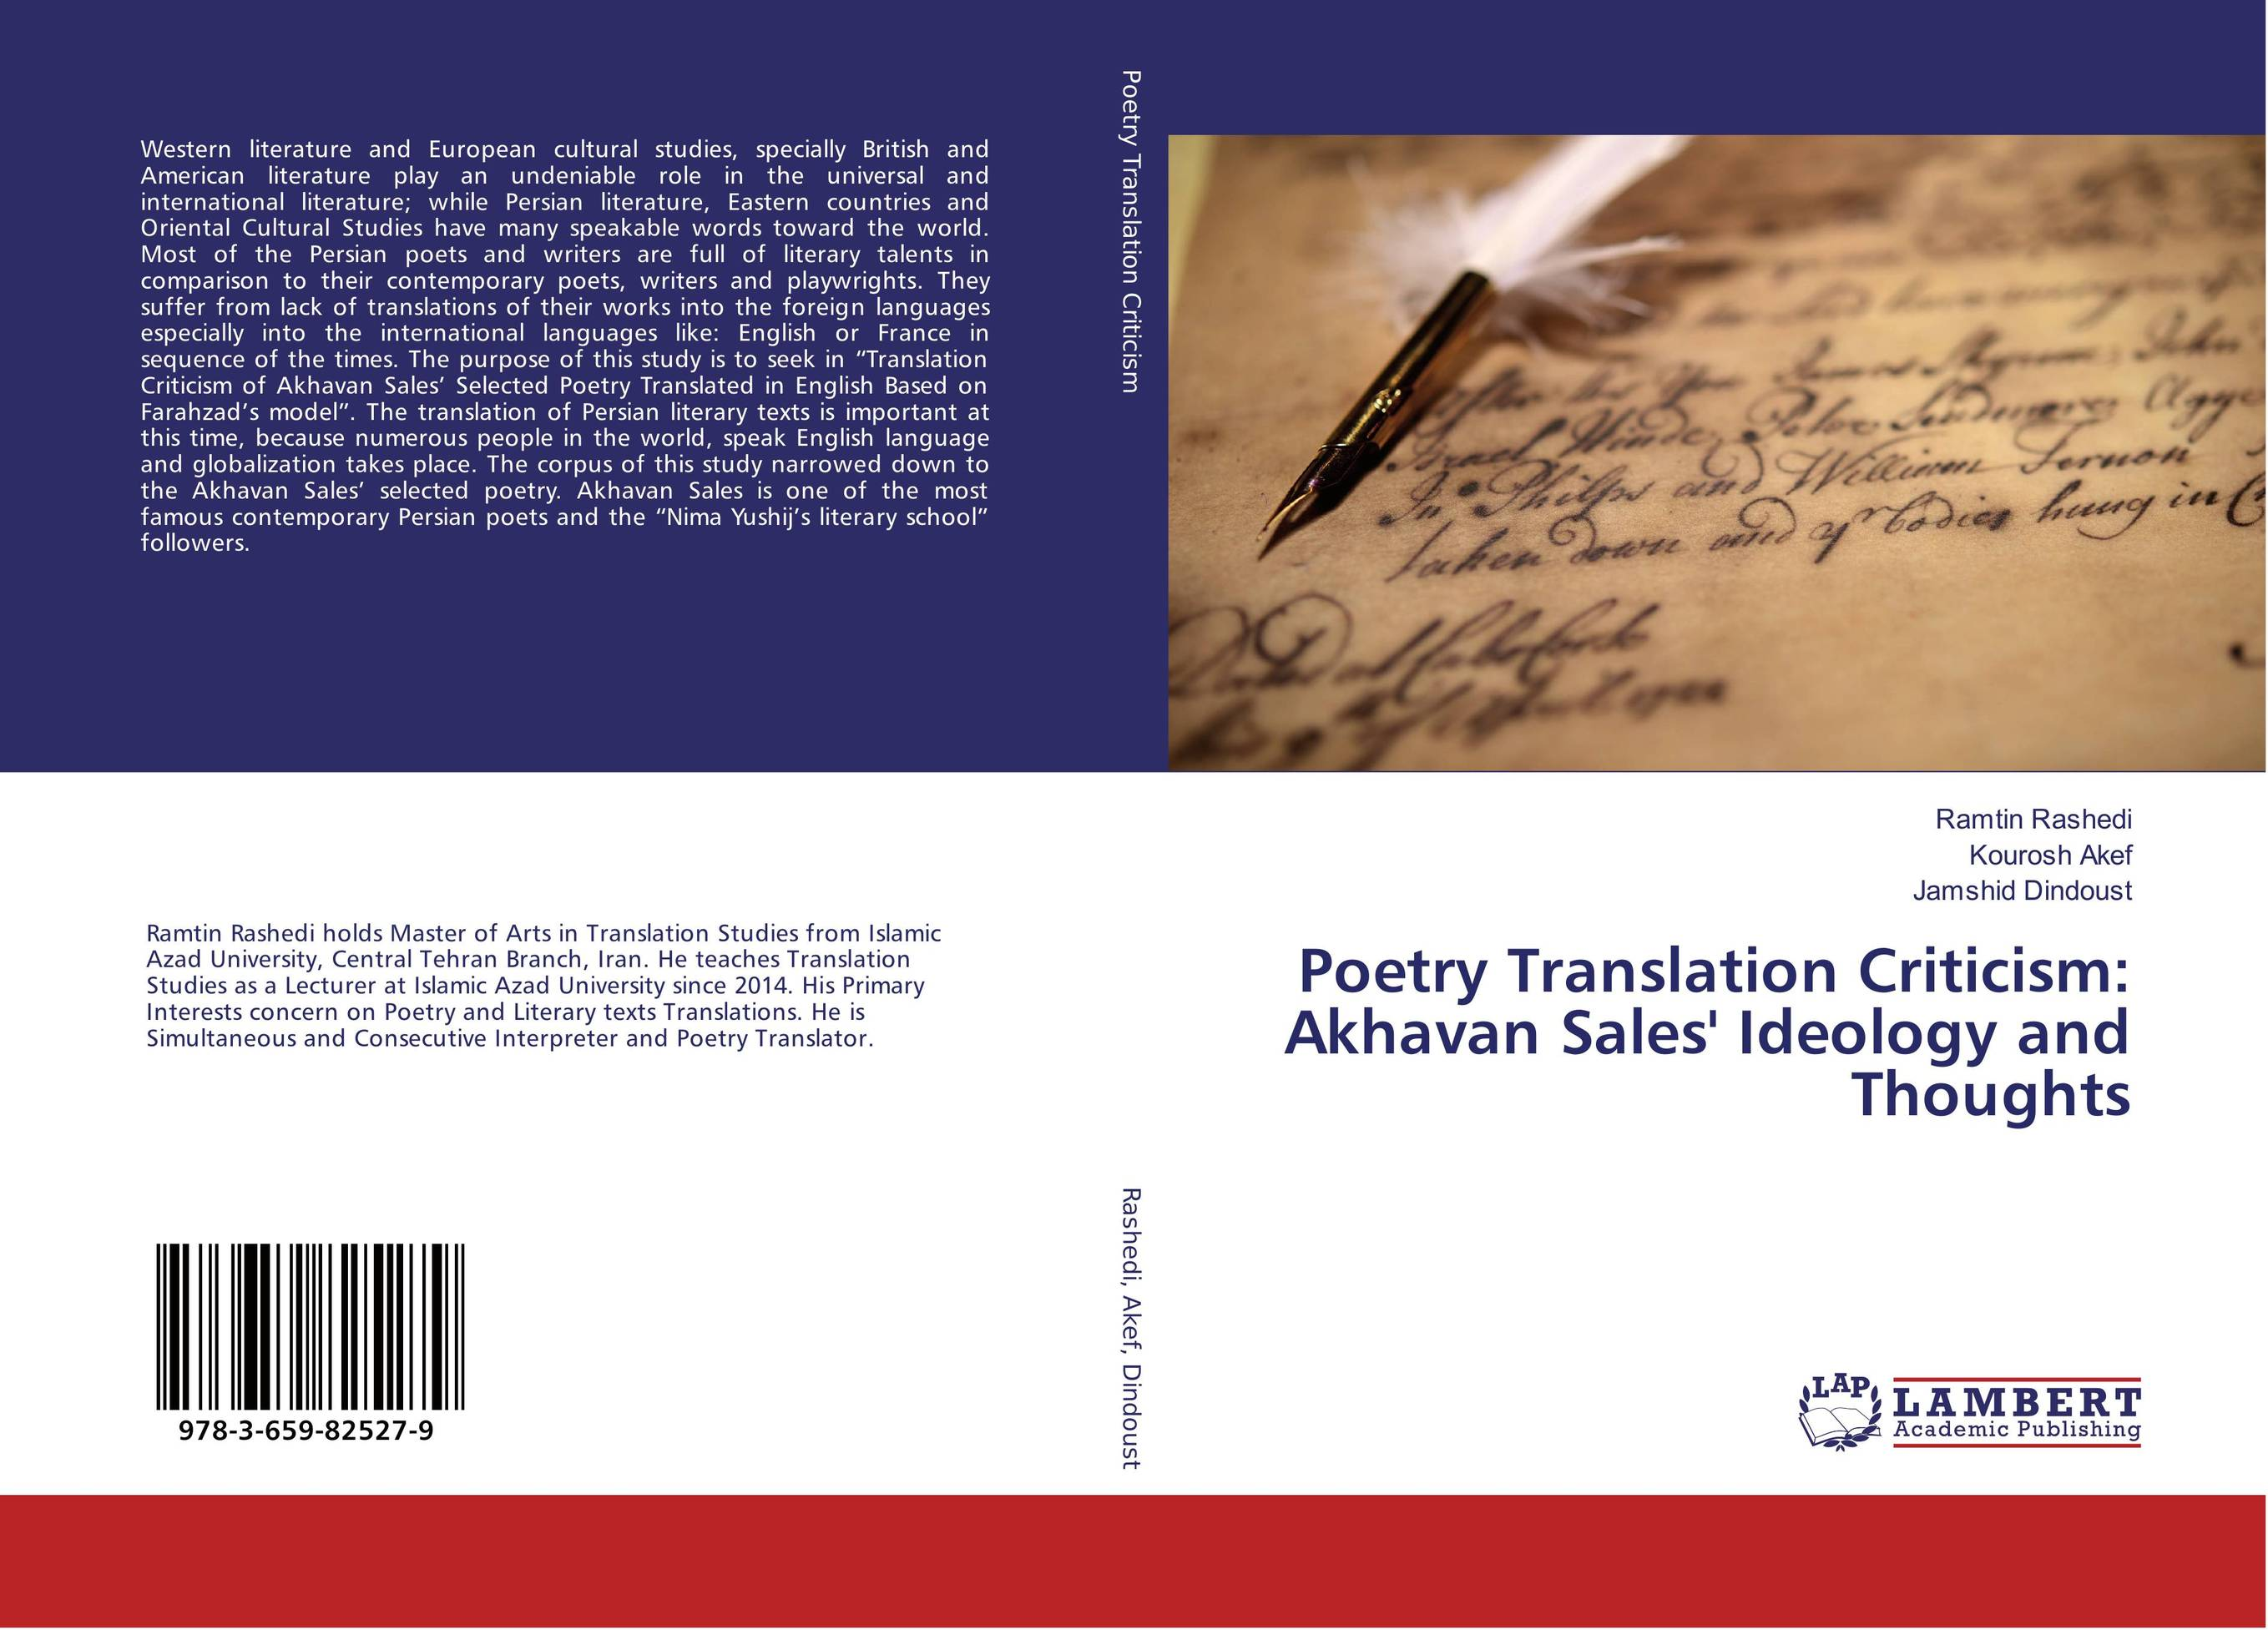 Poetry Translation Criticism: Akhavan Sales' Ideology and Thoughts the translation of figurative language